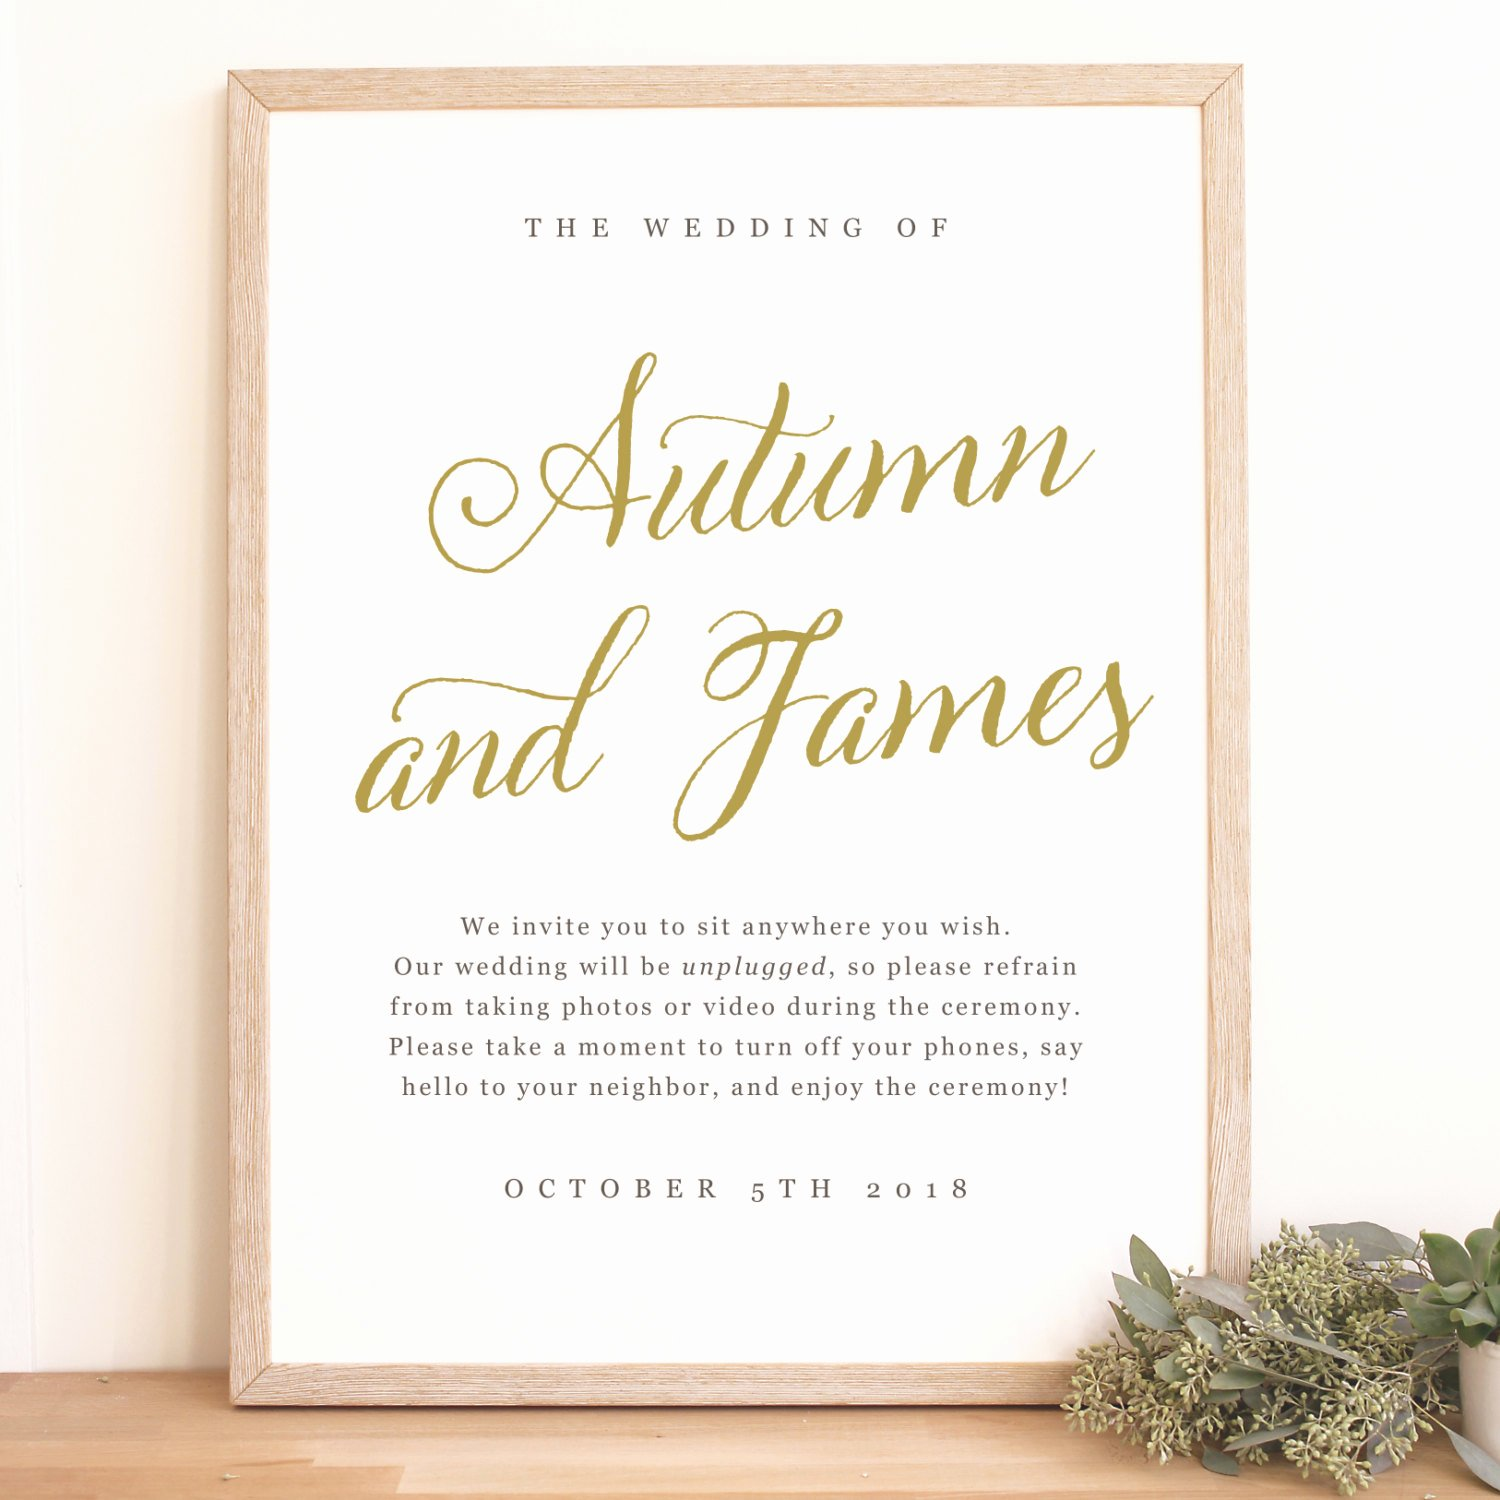 Wedding Welcome Sign Template Fresh Instant Download Wedding Wel E Sign Template Romantic